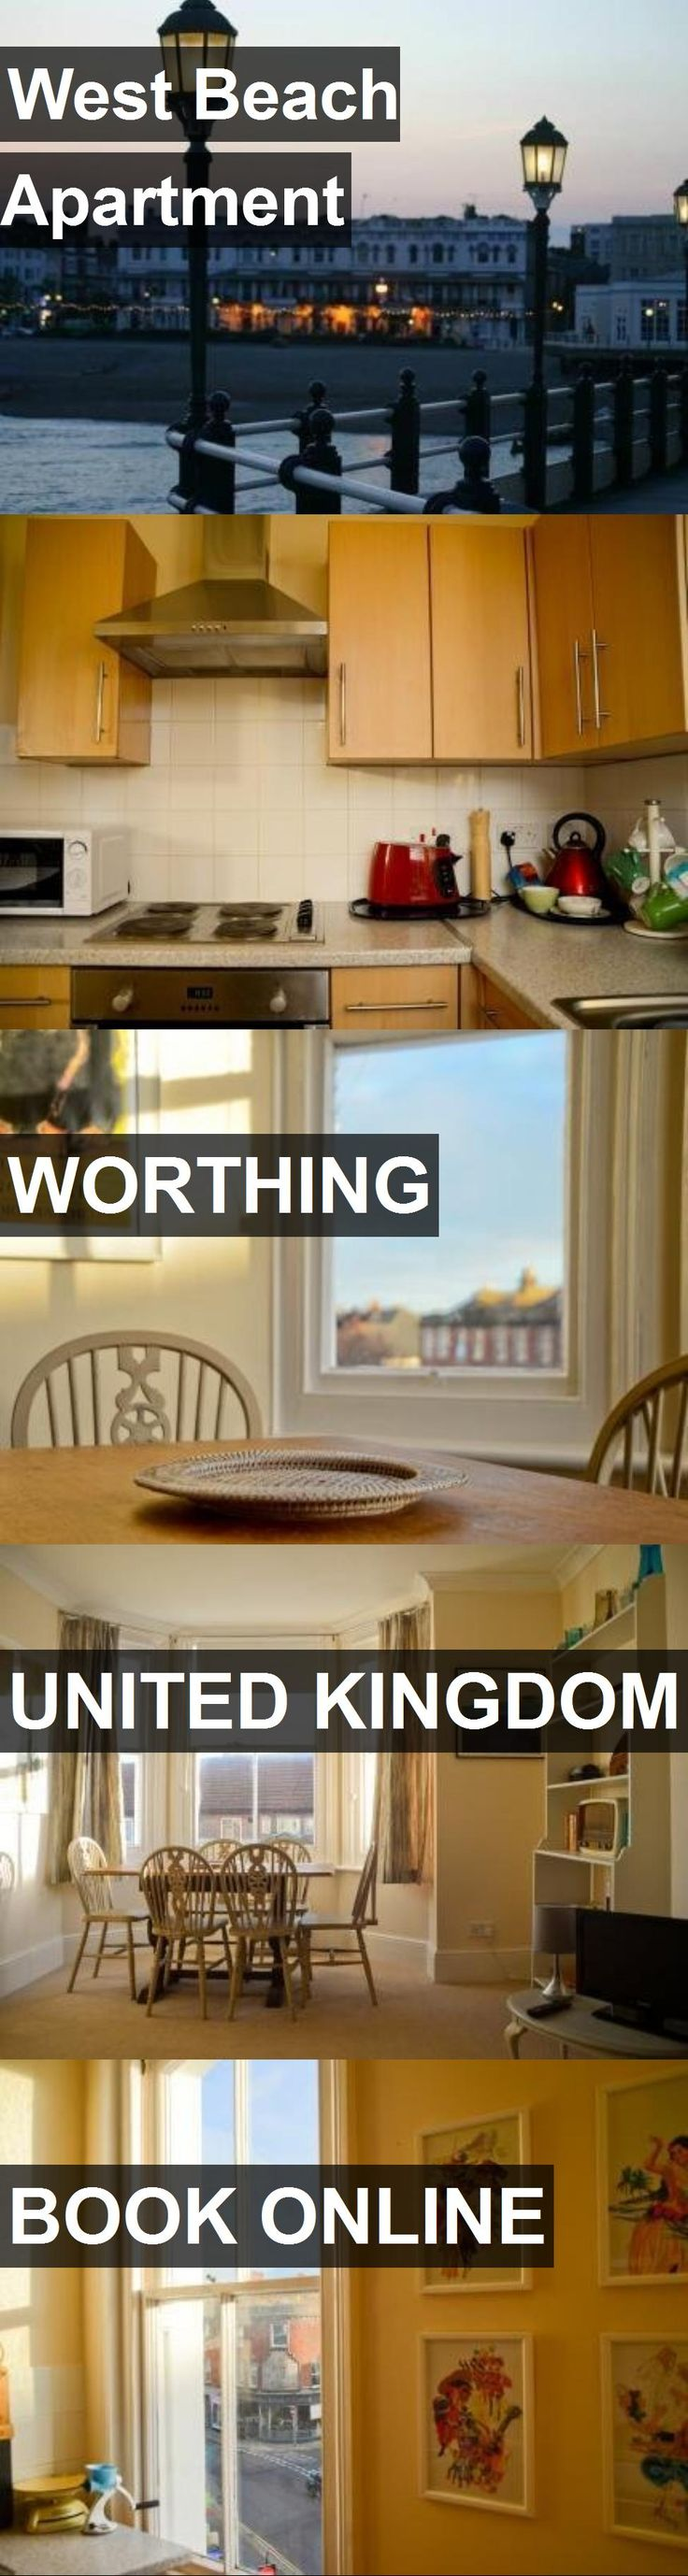 West Beach Apartment in Worthing, United Kingdom. For more information, photos, reviews and best prices please follow the link. #UnitedKingdom #Worthing #travel #vacation #apartment